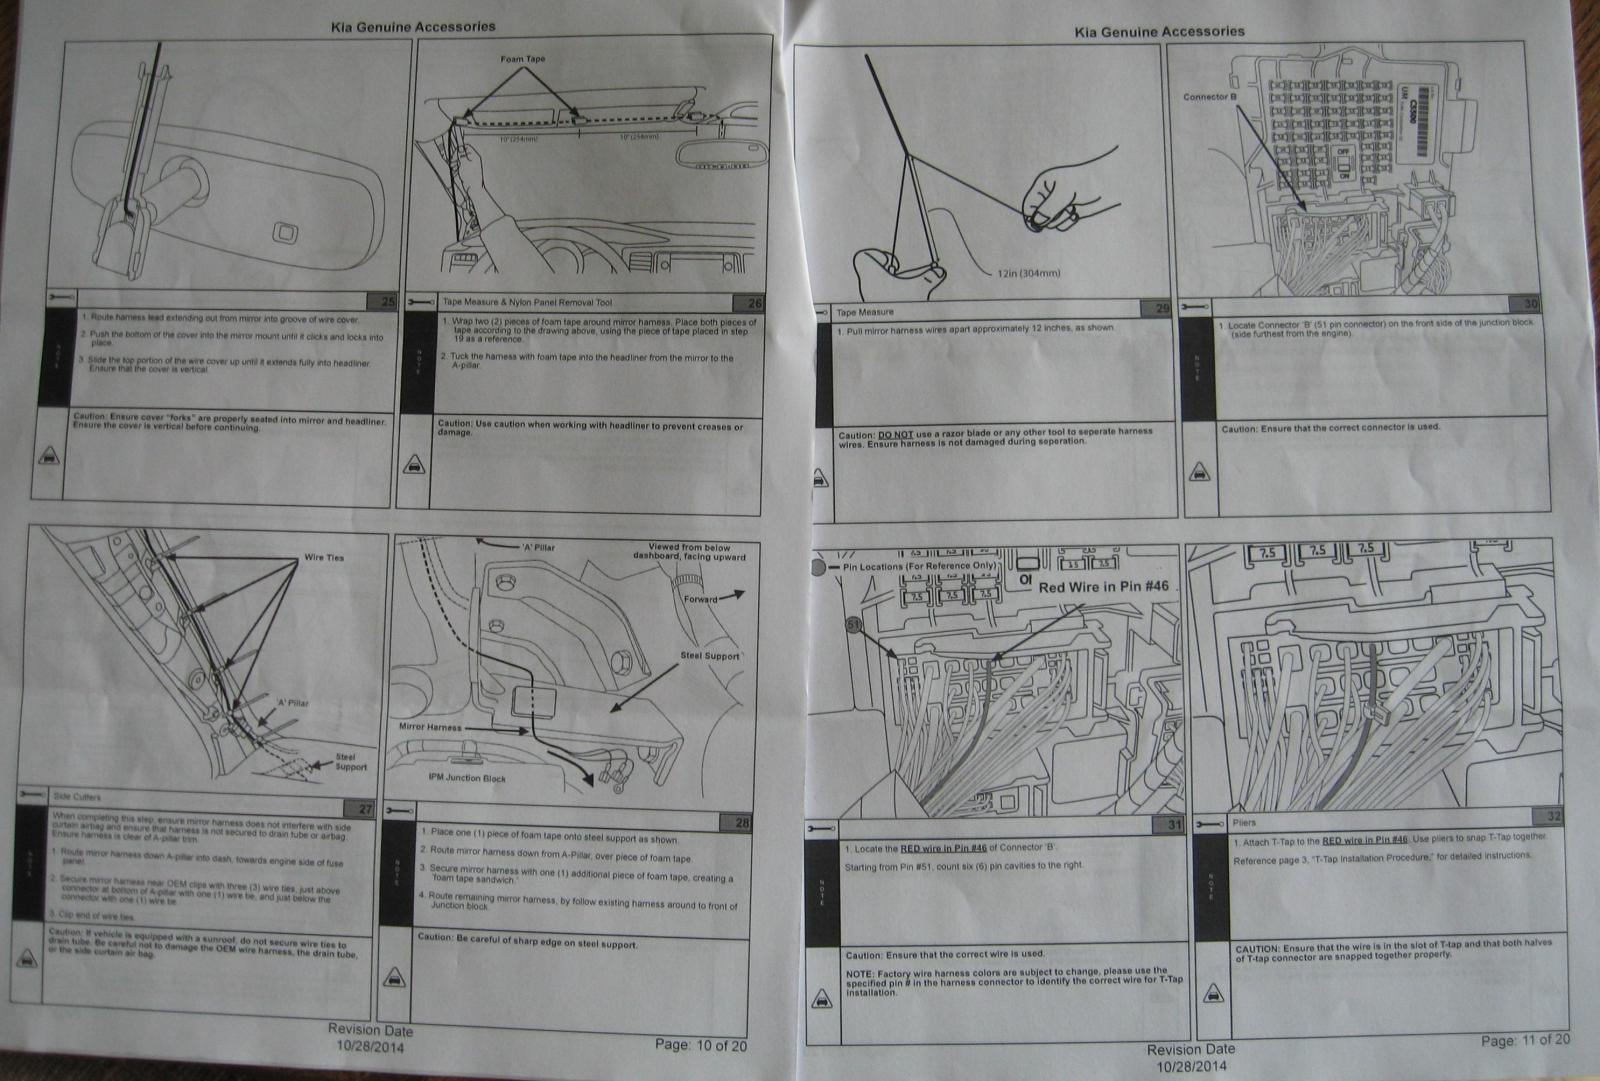 Wiring Diagram Along With Rear View Mirror Wiring Diagram Wiring